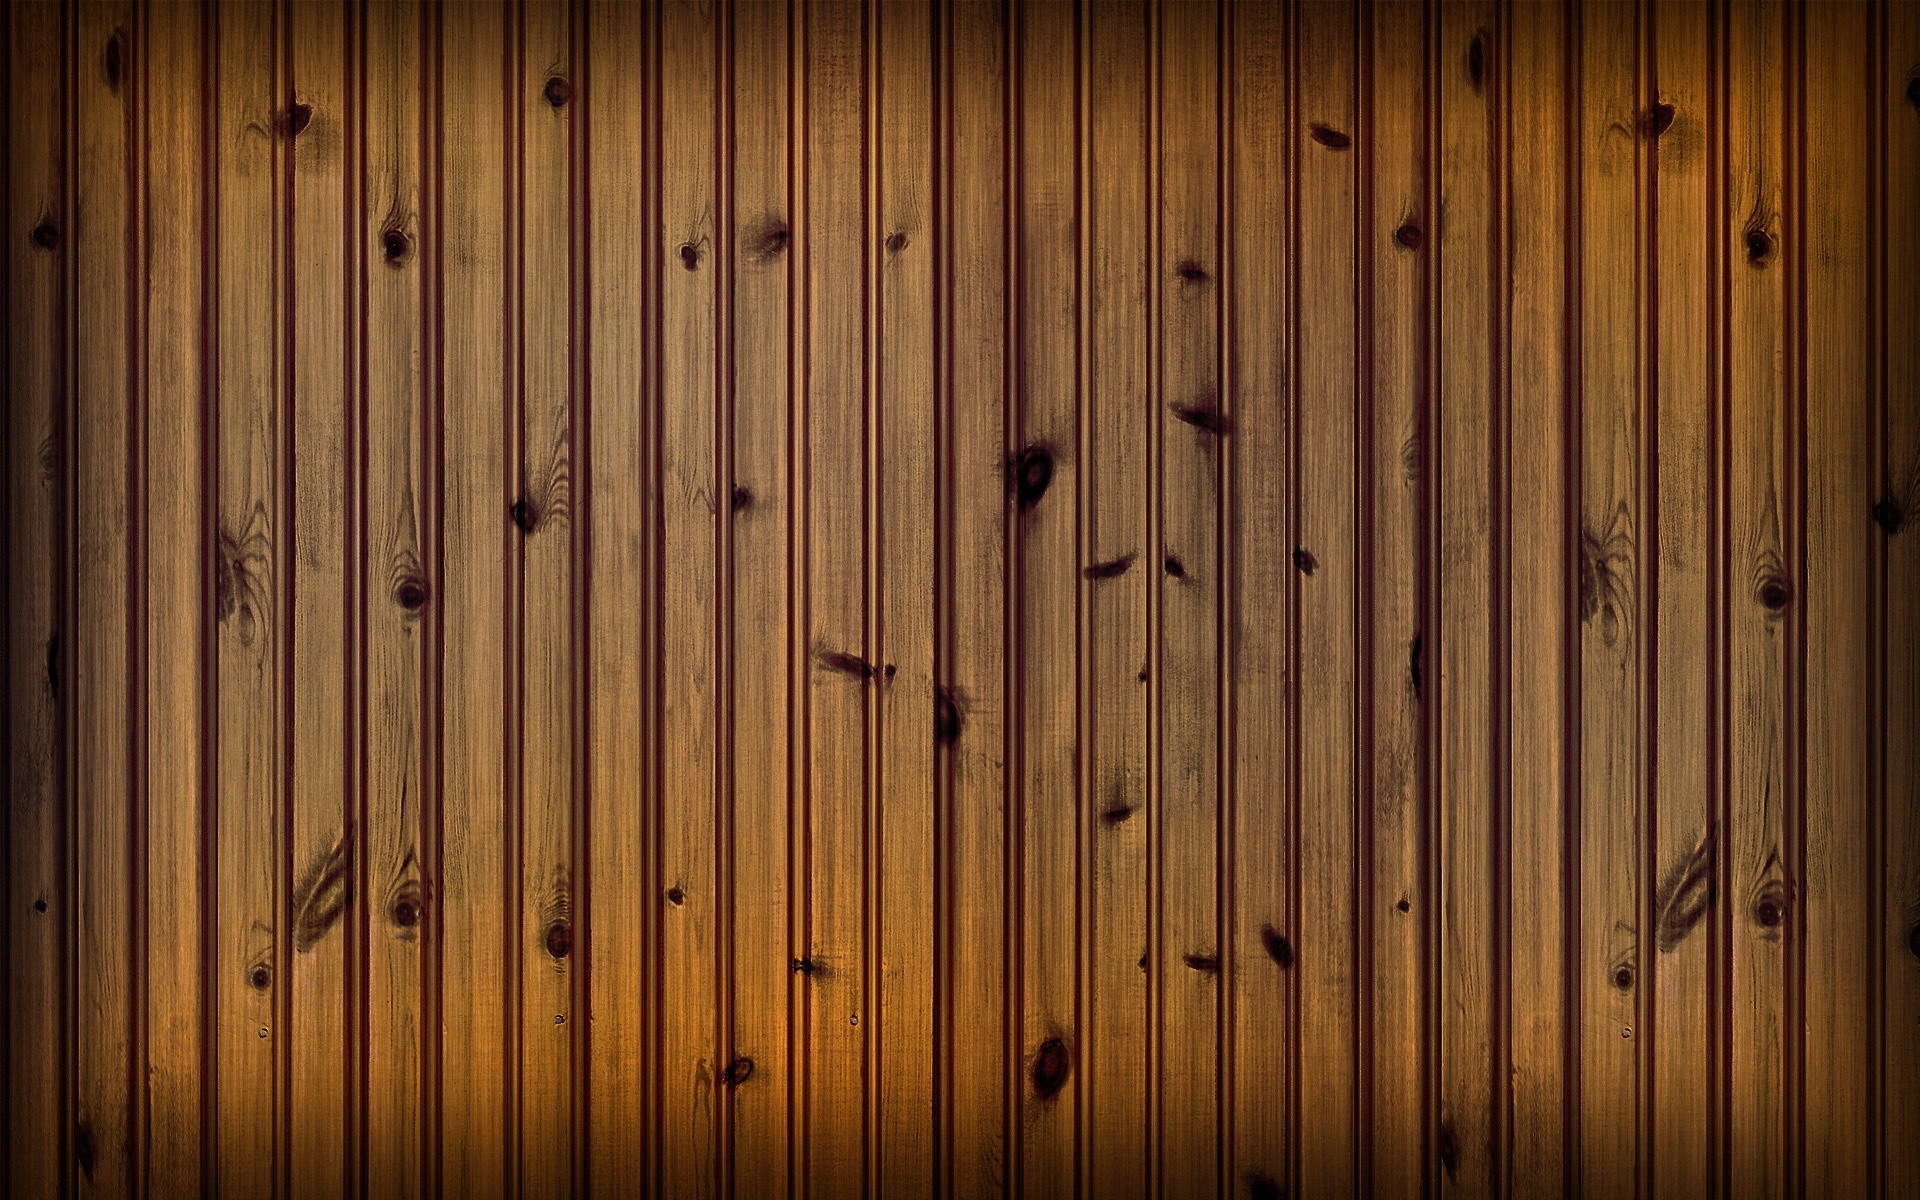 1920x1200 High Quality Wood Wallpaper